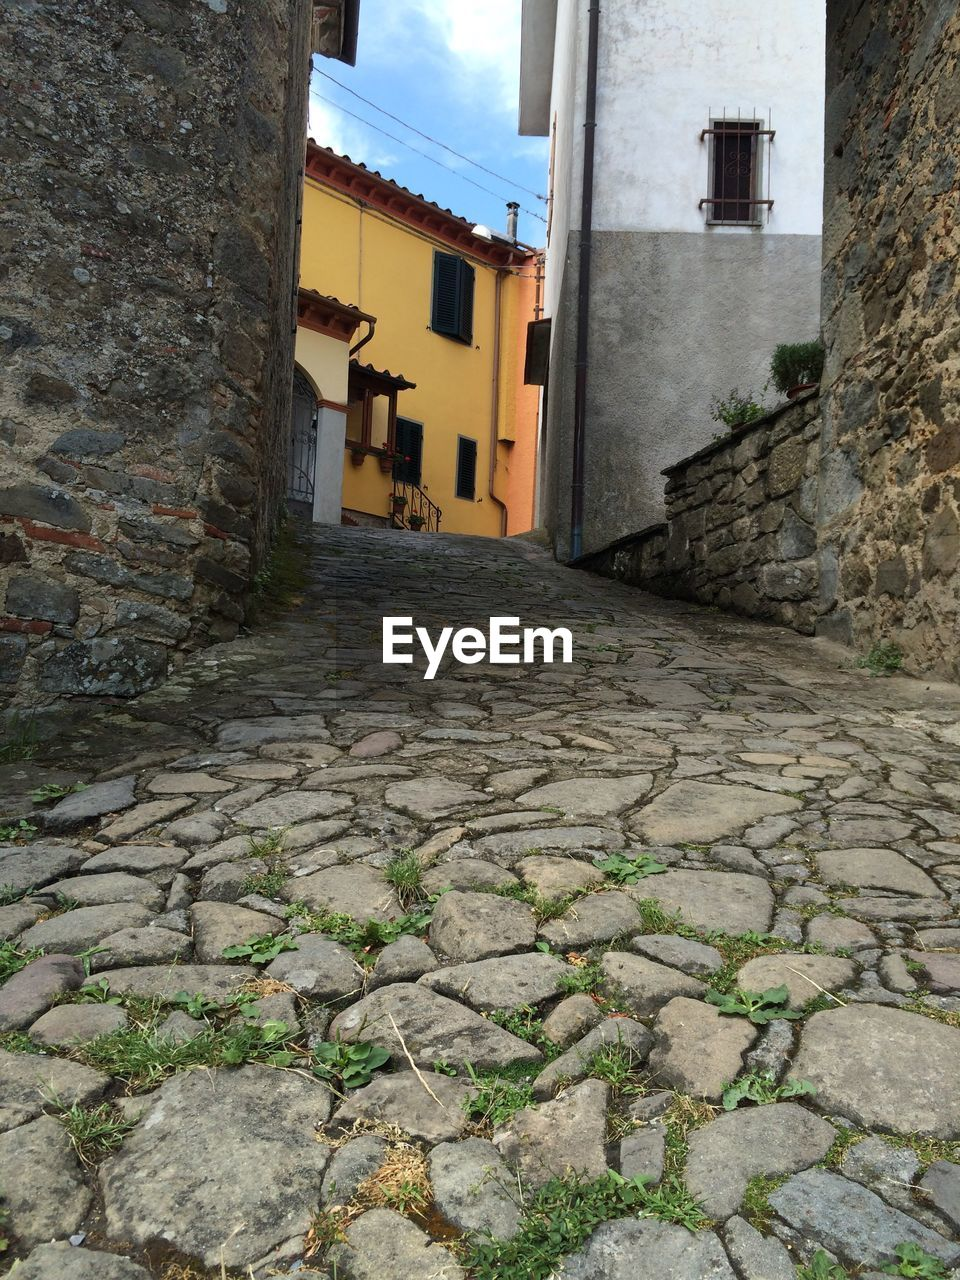 architecture, built structure, building exterior, building, the way forward, direction, city, footpath, cobblestone, residential district, no people, house, day, street, wall, outdoors, narrow, stone wall, nature, wall - building feature, alley, paving stone